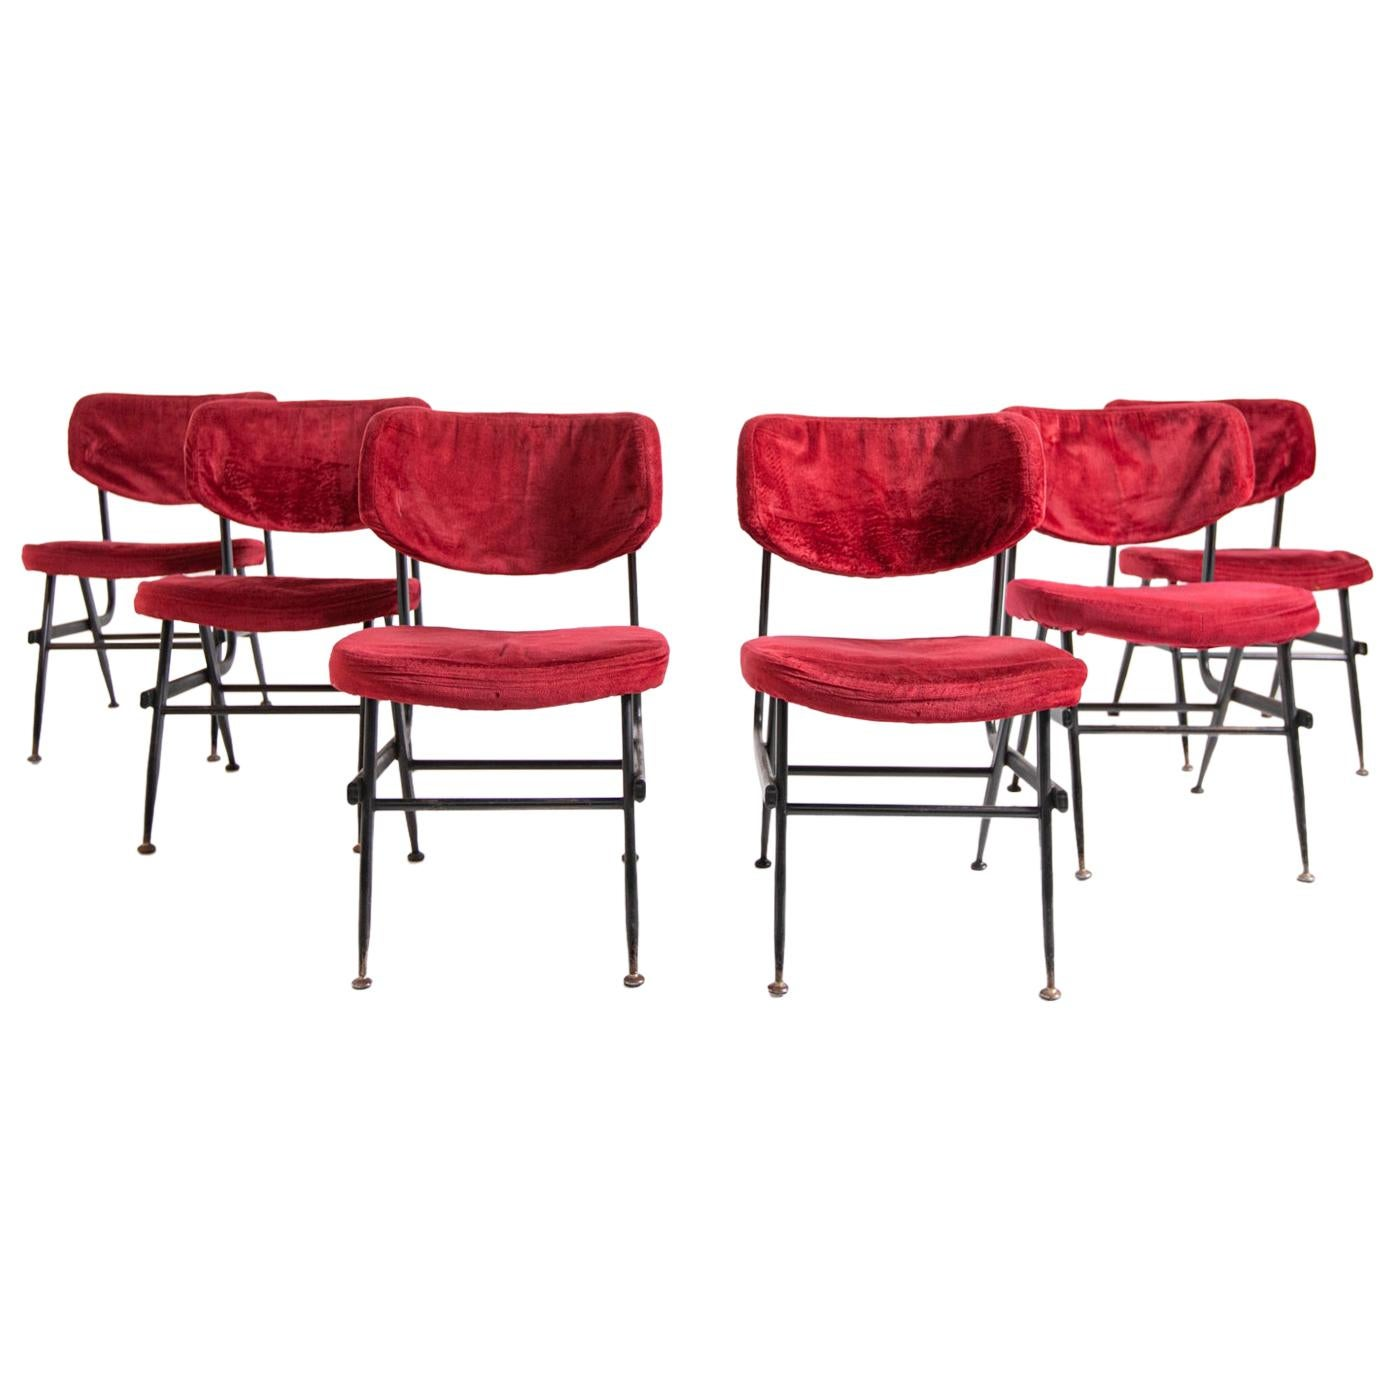 Italian Chairs Set of Six in Red Velvet and Iron, 1950s